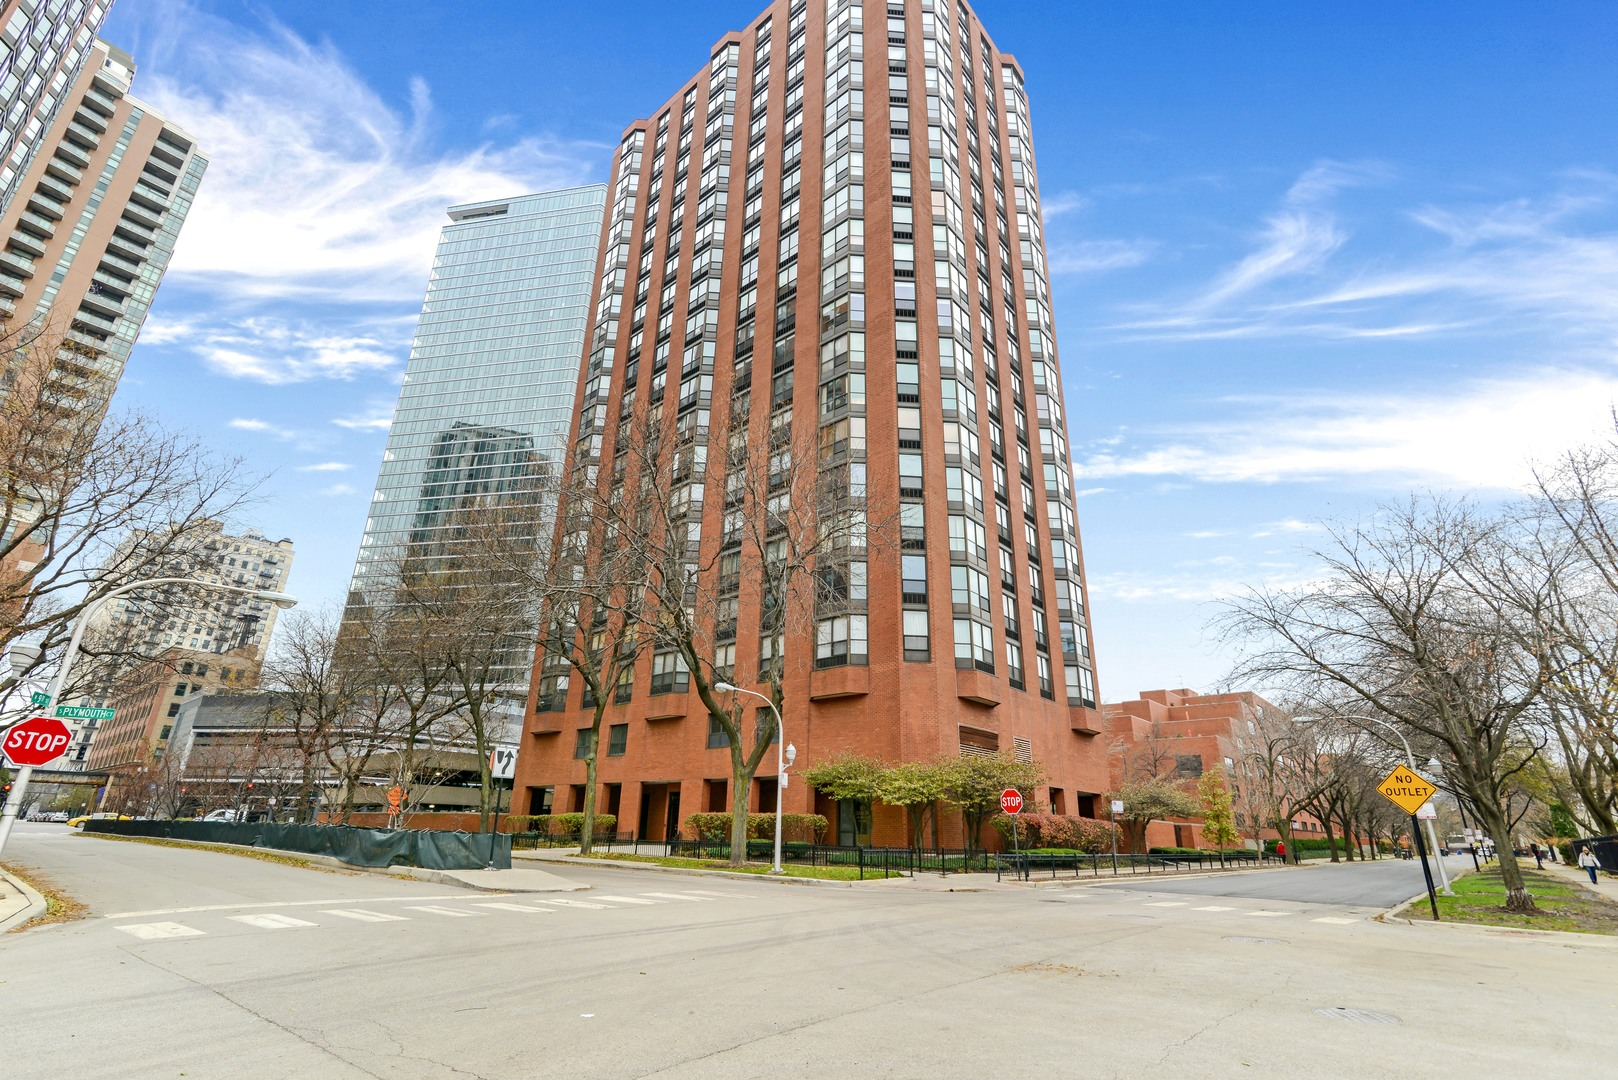 901 S. Plymouth #1103